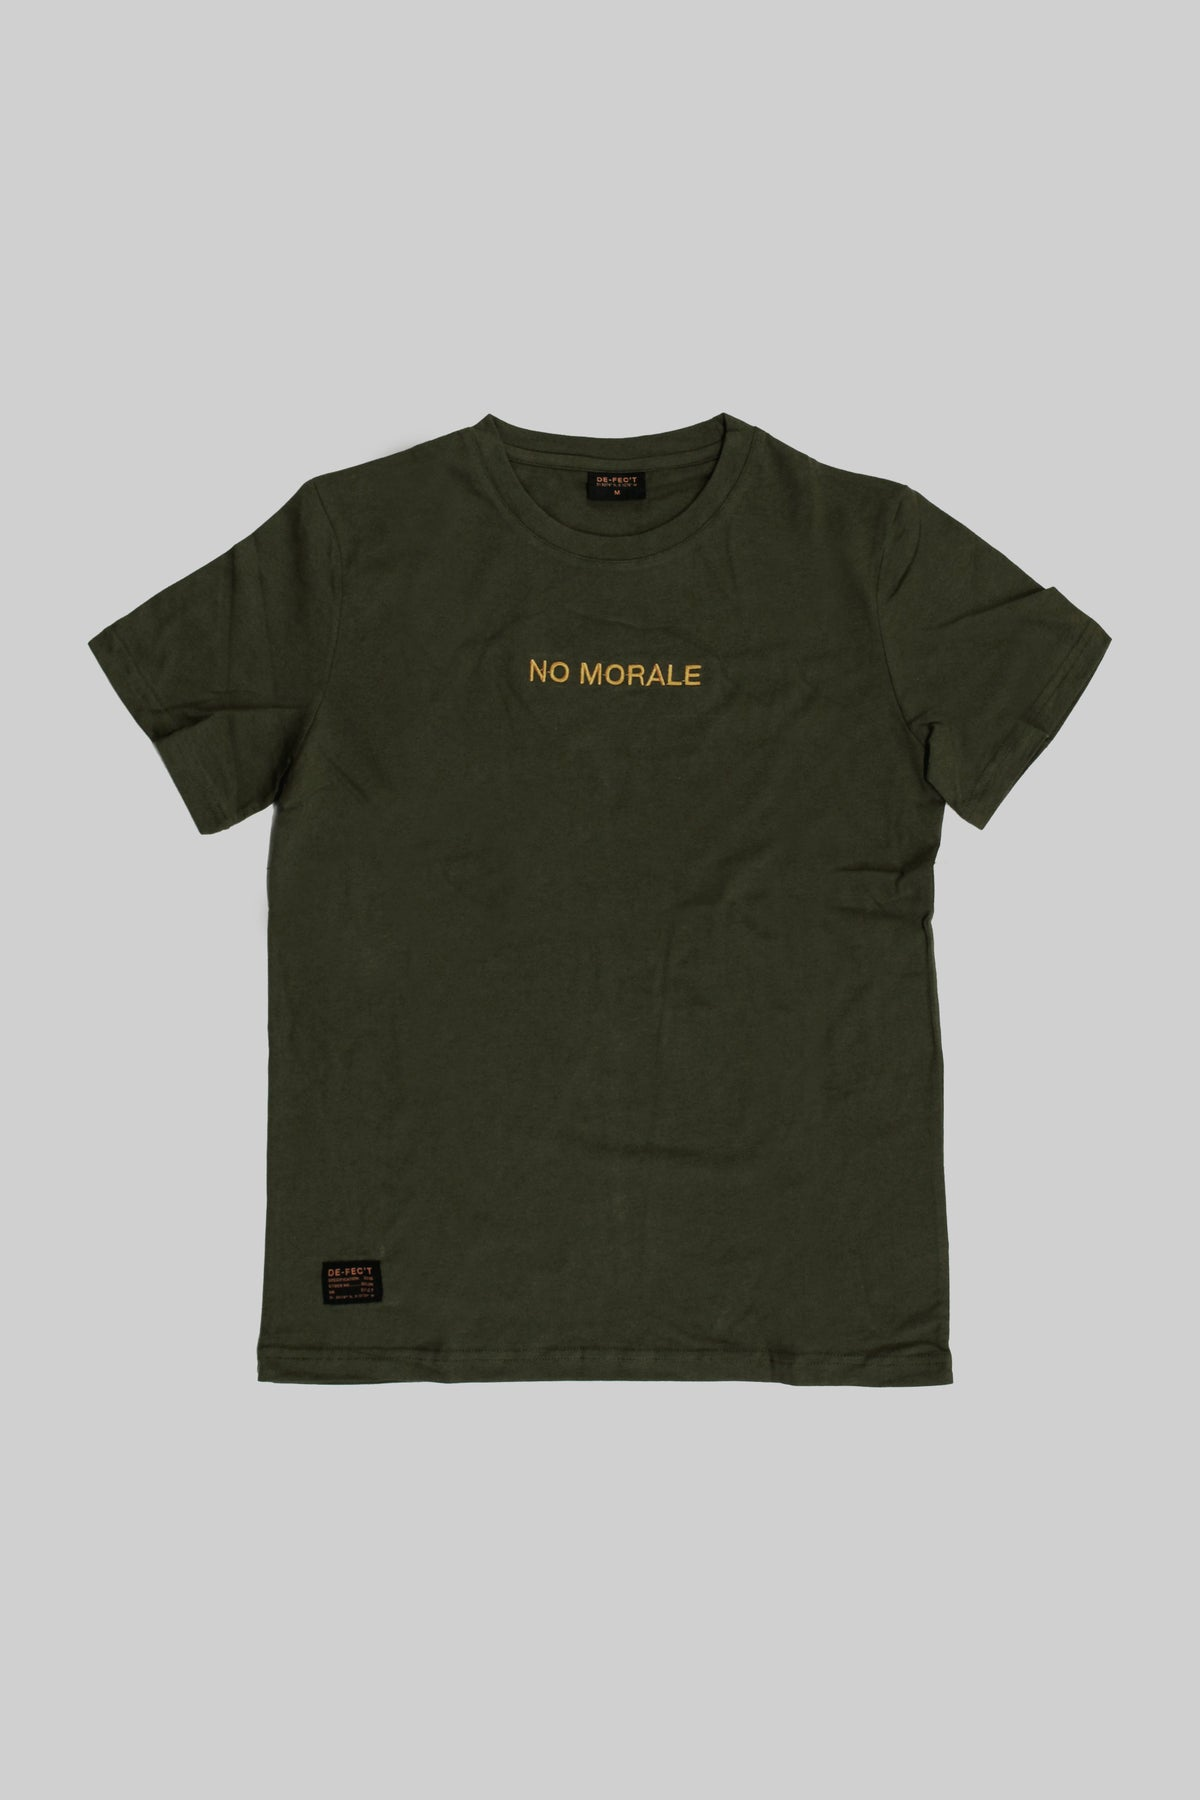 Image of No Morale - Crewneck T-shirt